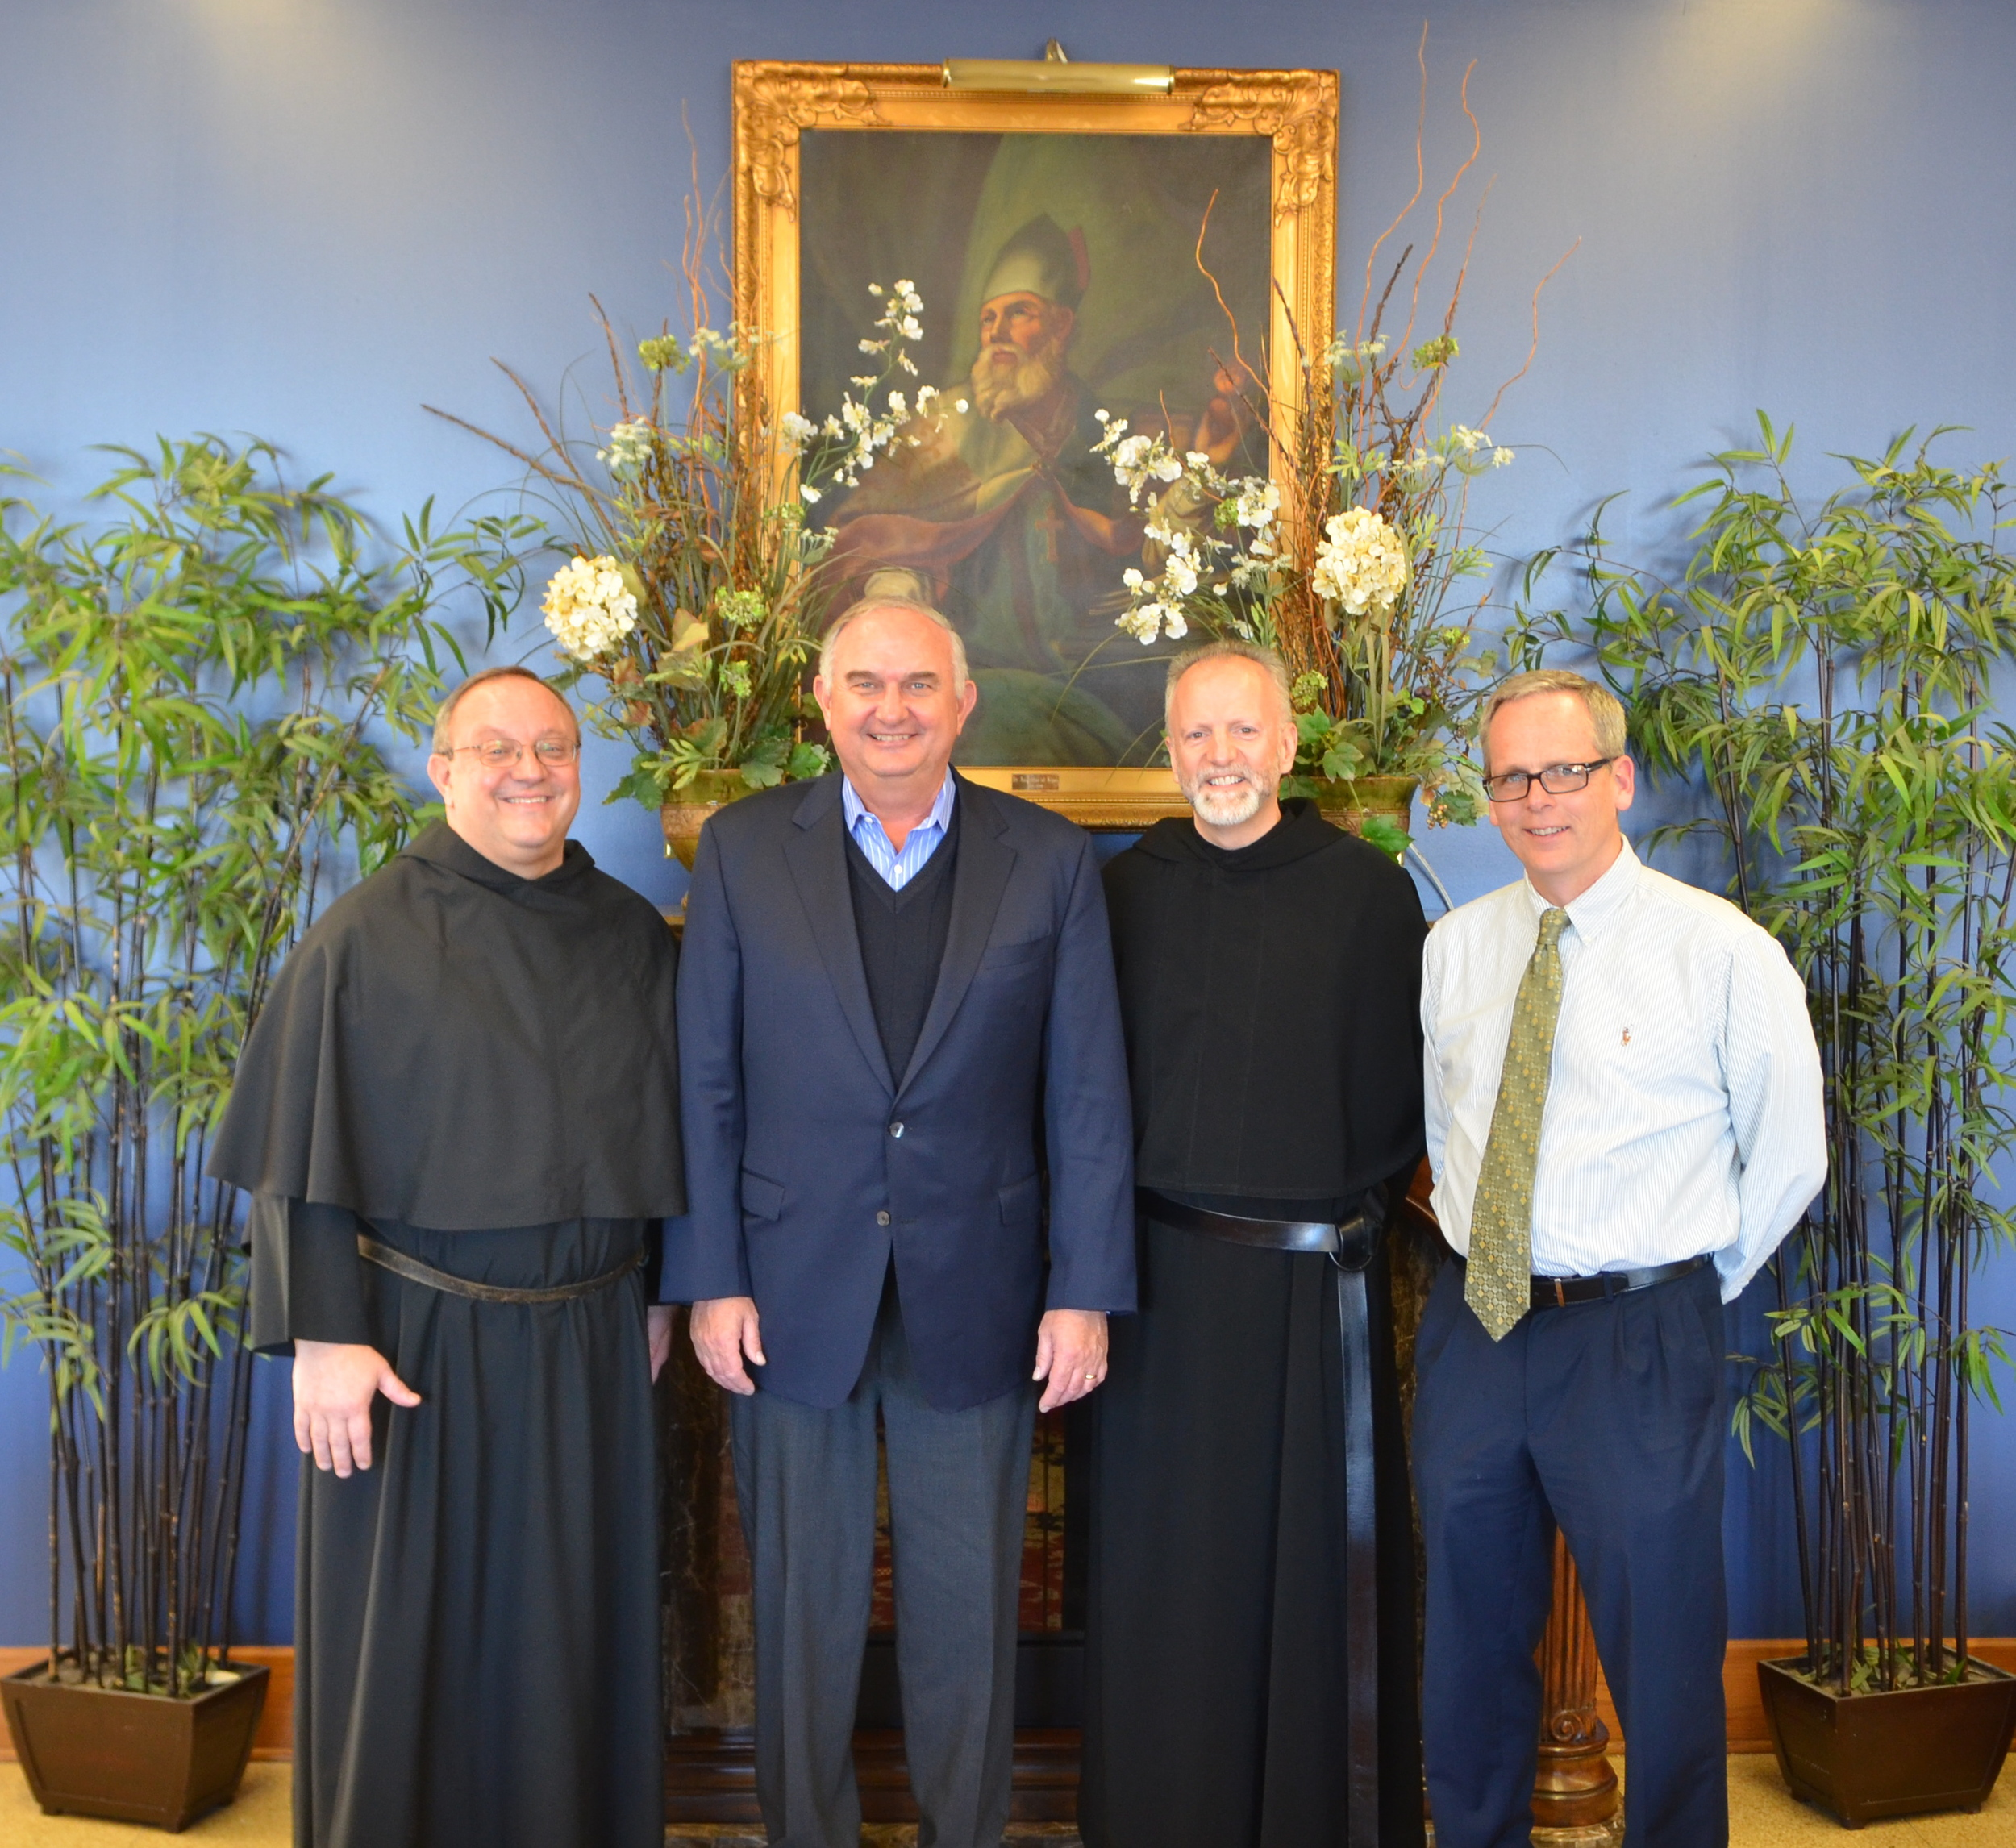 (From left)  Very Rev. Bernard C. Scianna, O.S.A., PH.D., Prior Provincial; Ernie Mrozek, President of St. Rita of Cascia High School; Fr. Steve M Curry, O.S.A., Ed.D., Director of Augustinian Mission, and Brendan Conroy, Principal